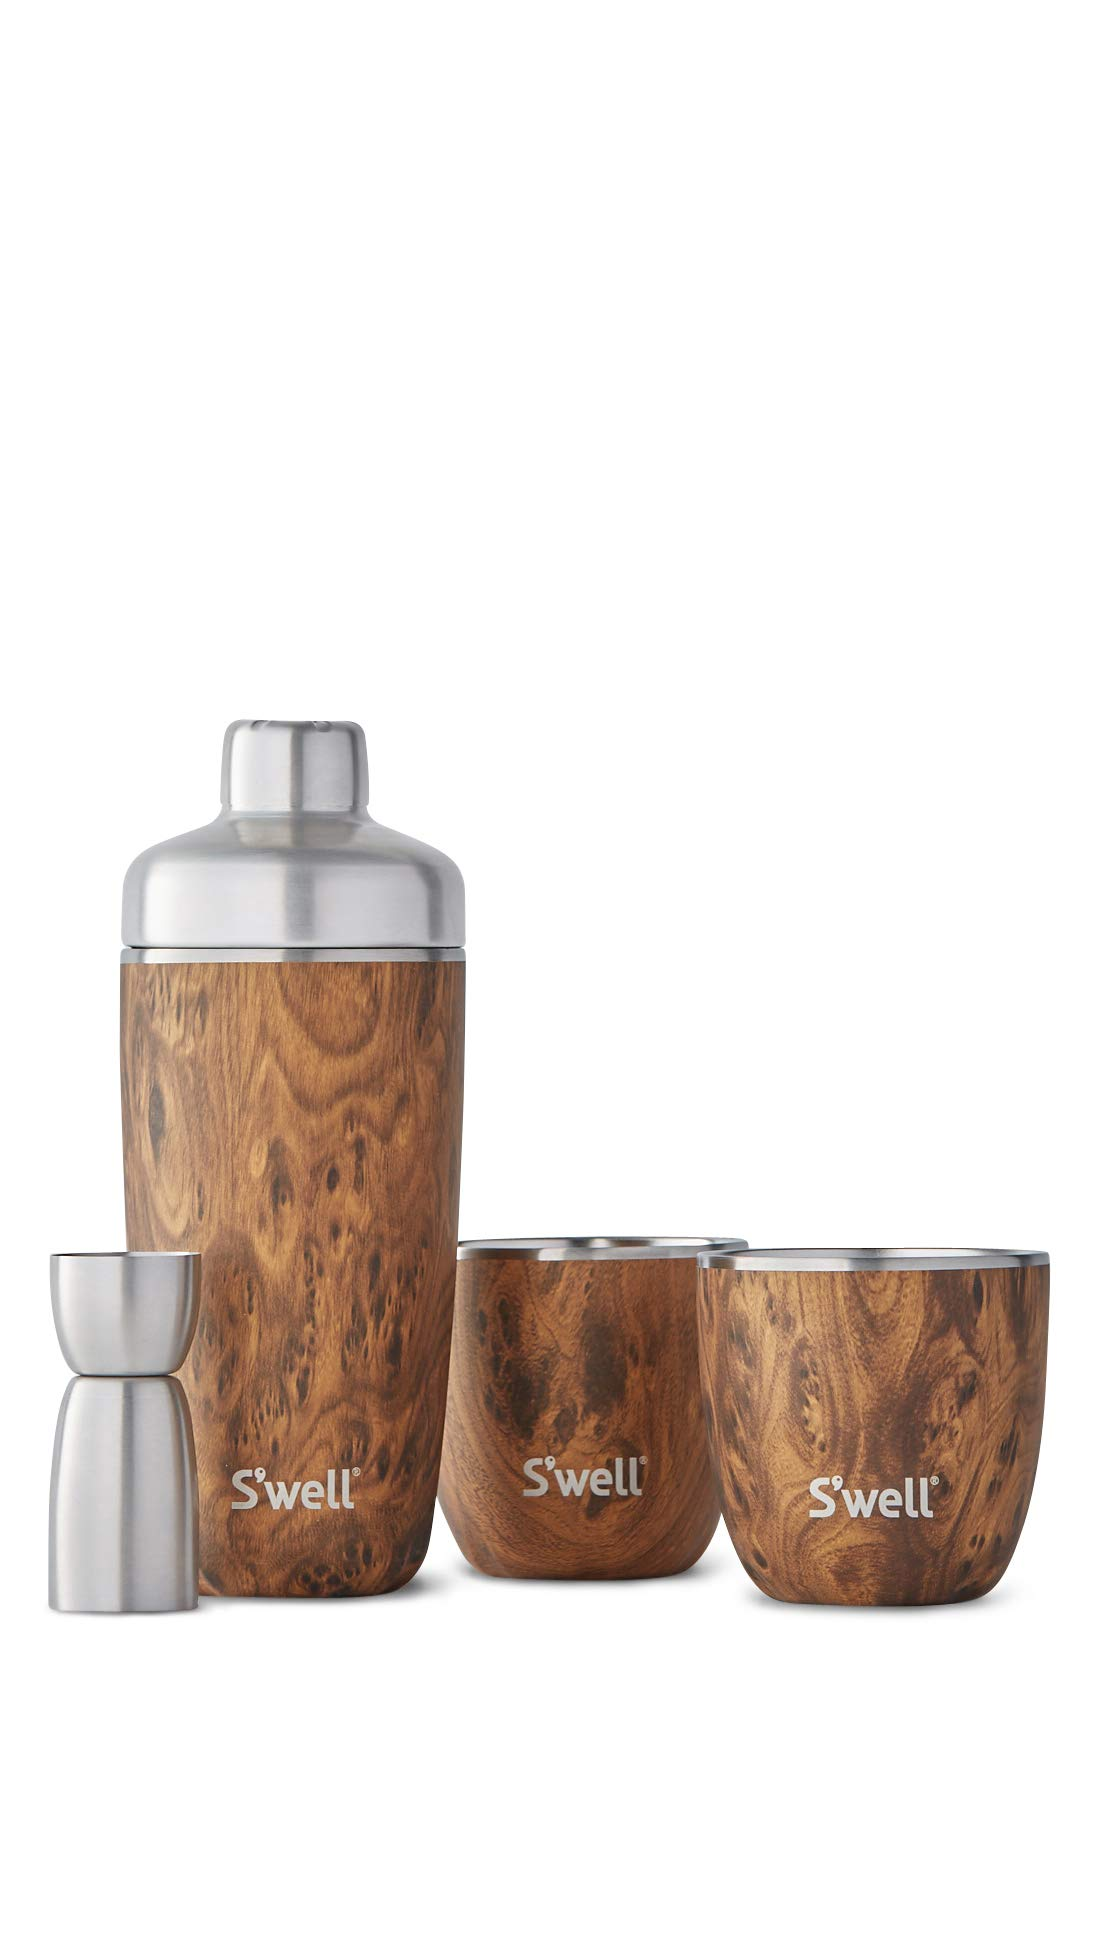 S'well Teakwood Cocktail Kit, One Size